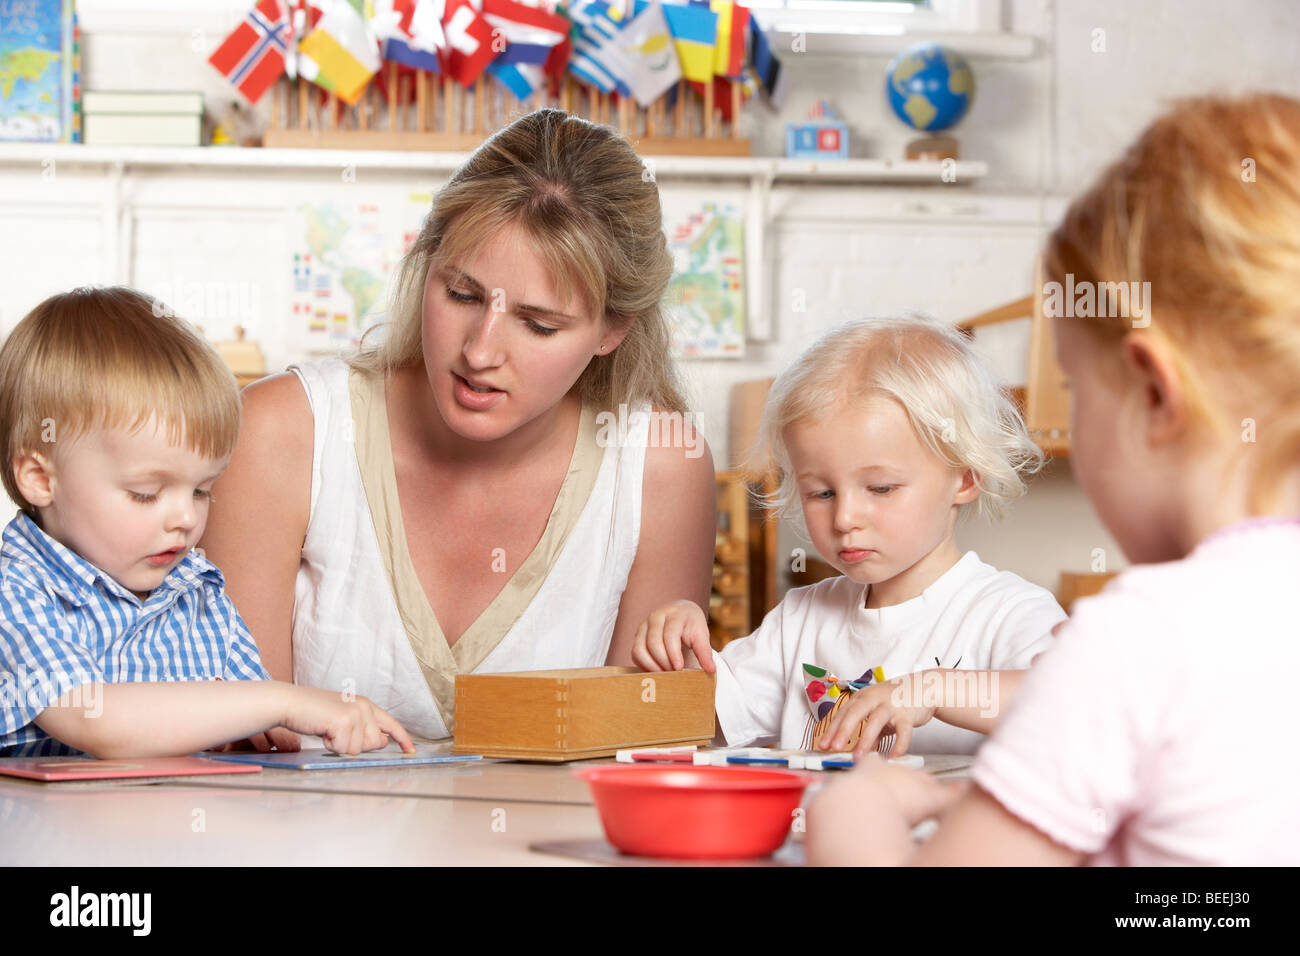 Young Boy Playing at Montessori/Pre-School - Stock Image